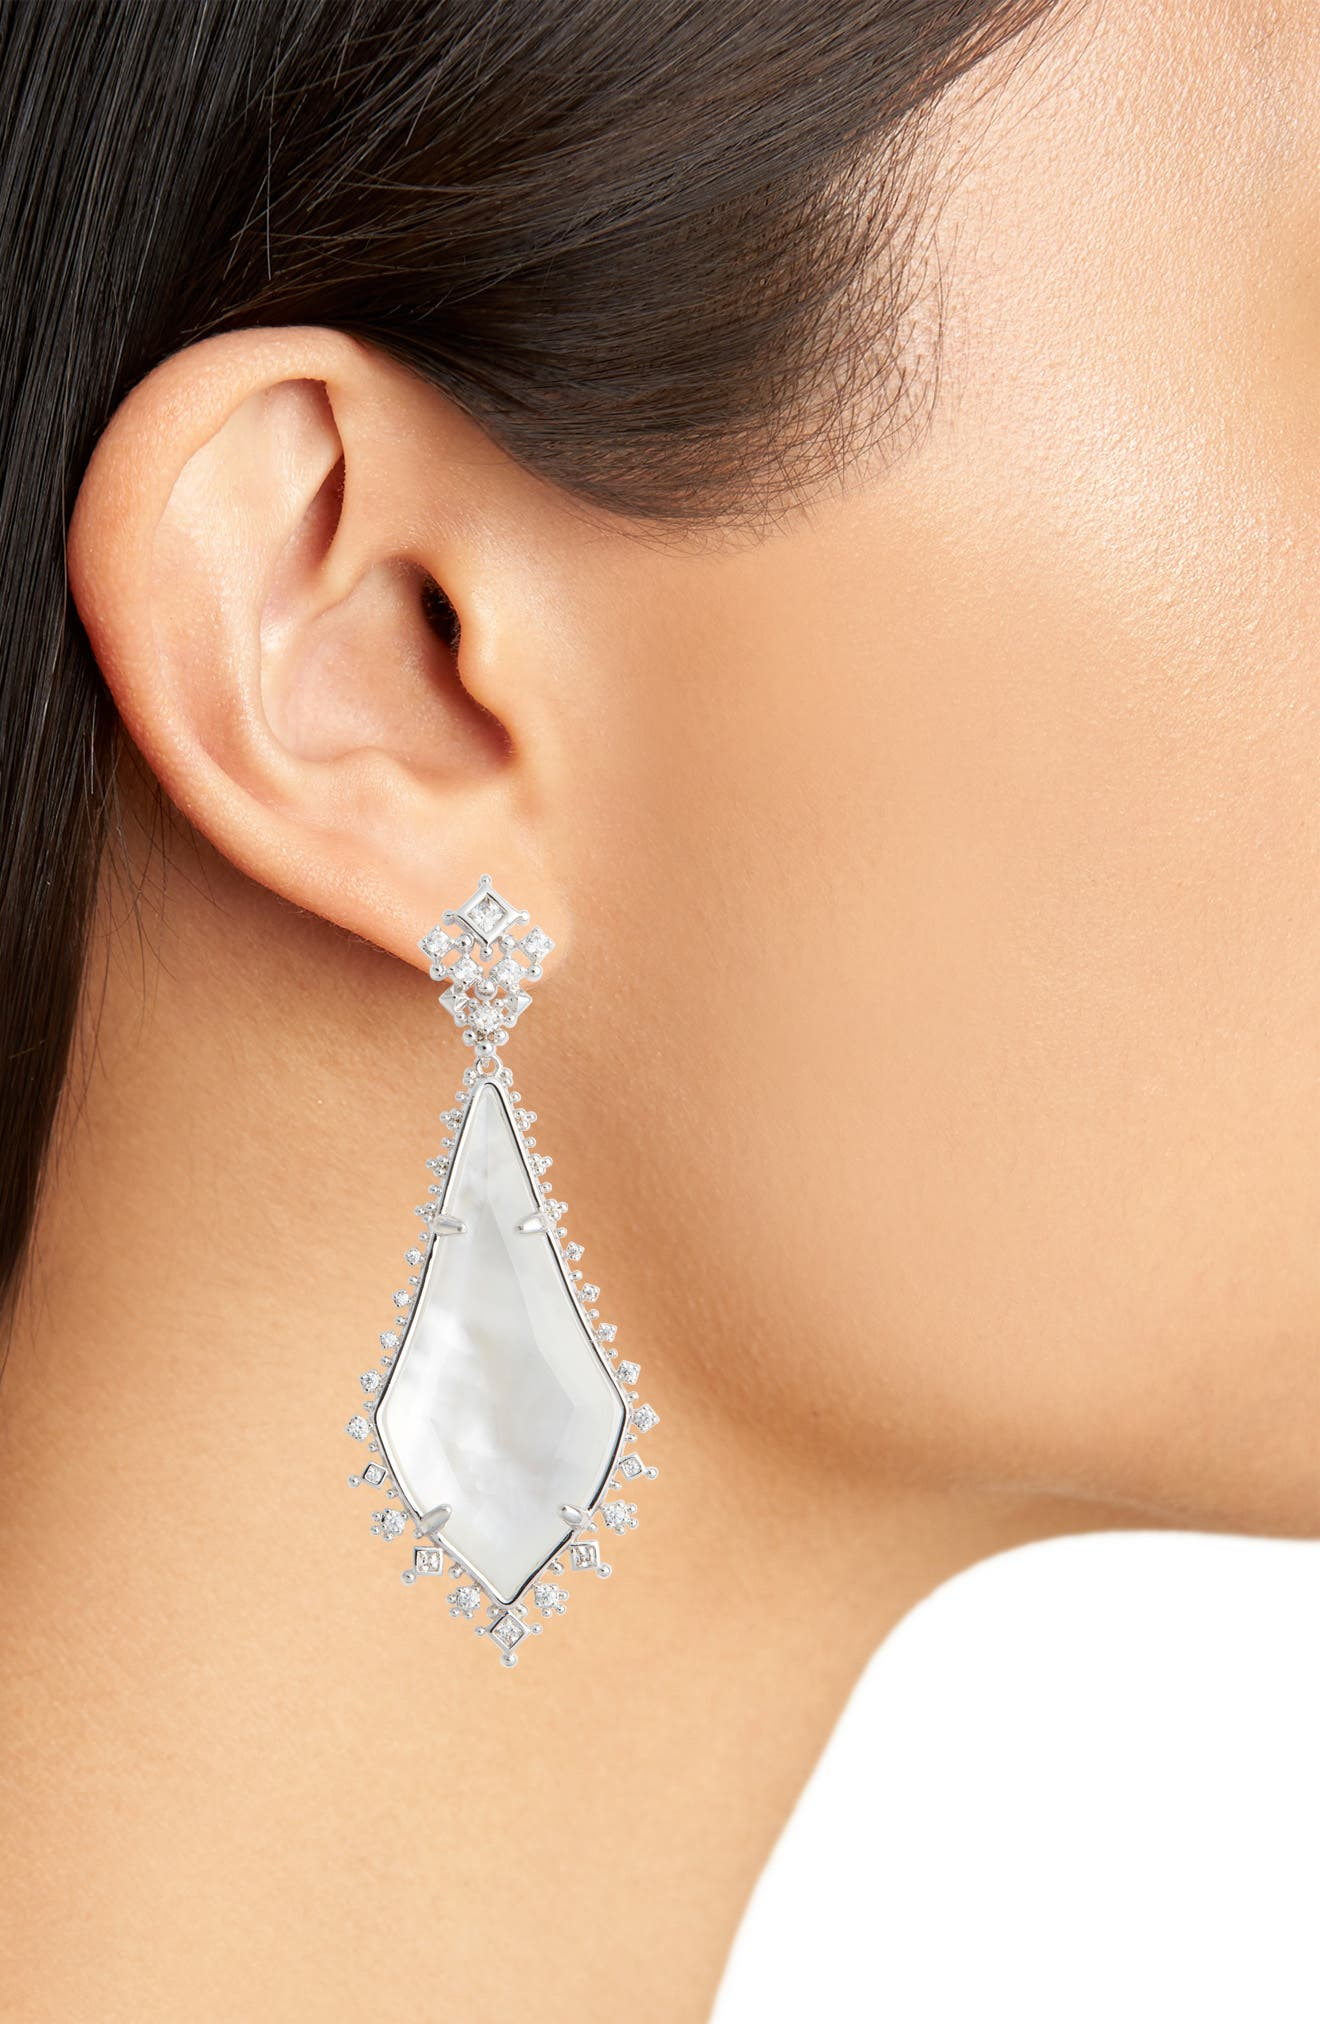 Martha Mother of Pearl Drop Earrings,                             Alternate thumbnail 2, color,                             Silver